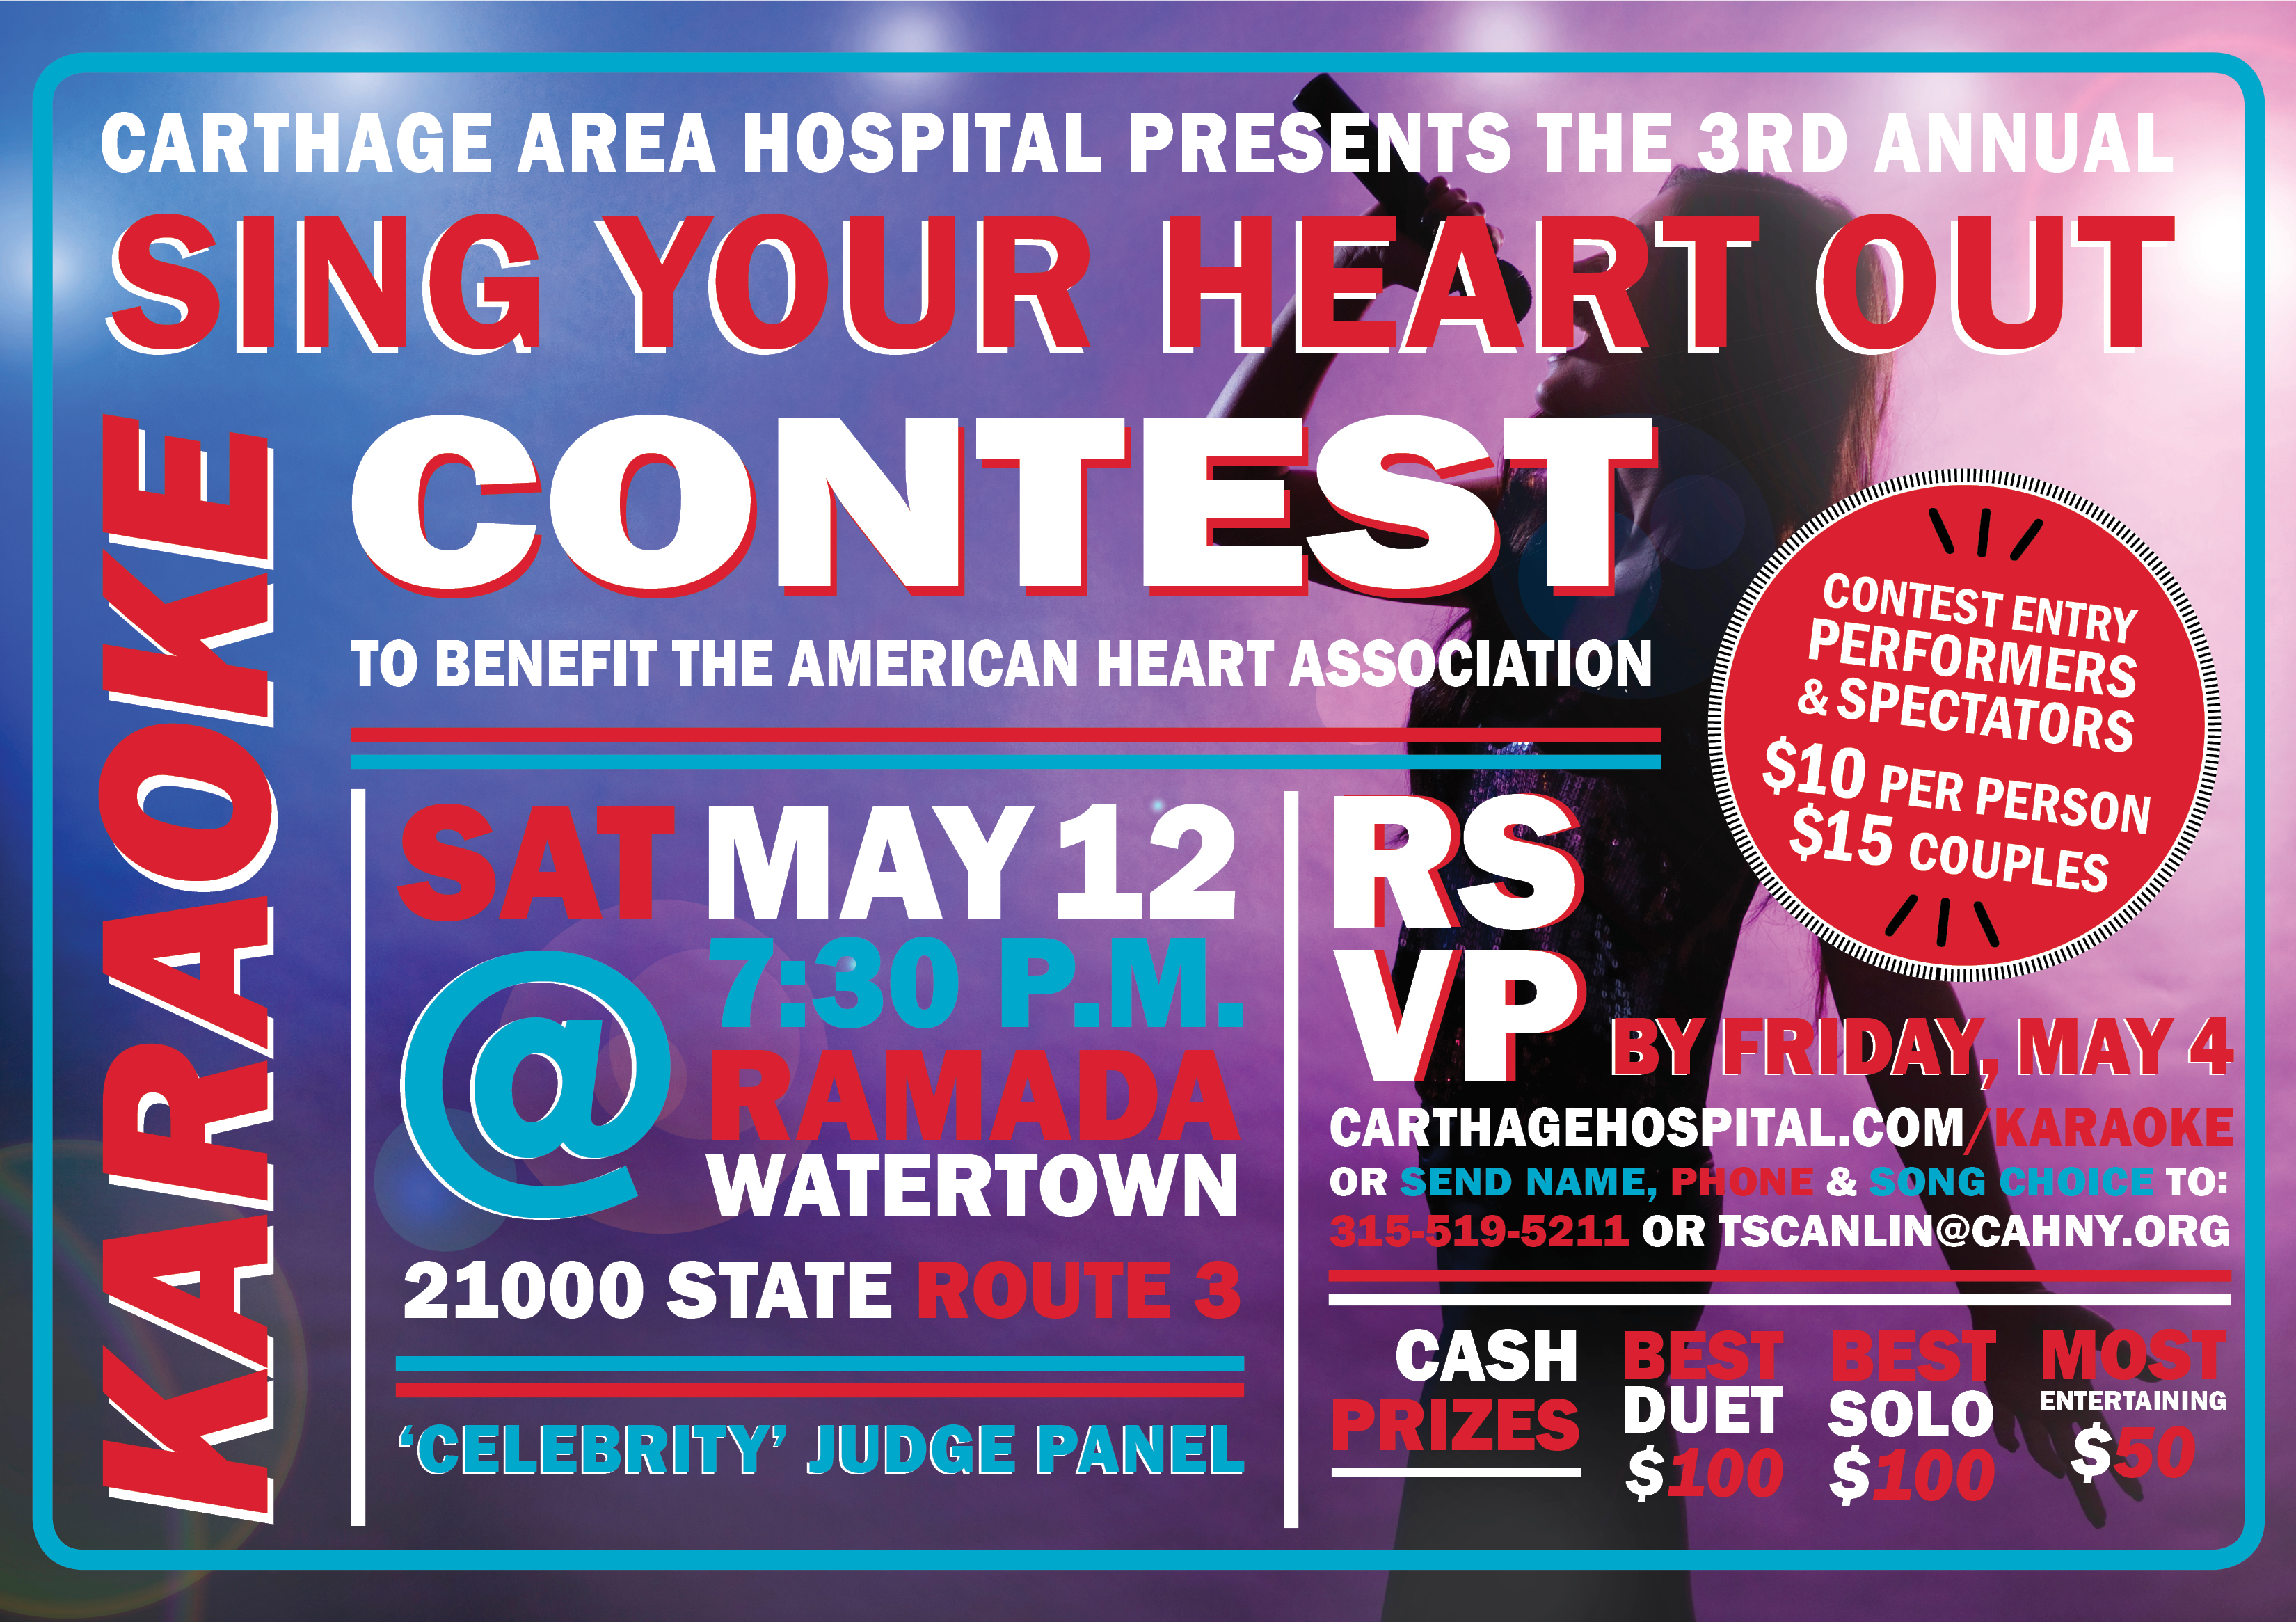 Sing Your Heart Out' to Help End Heart Disease in 3rd Annual